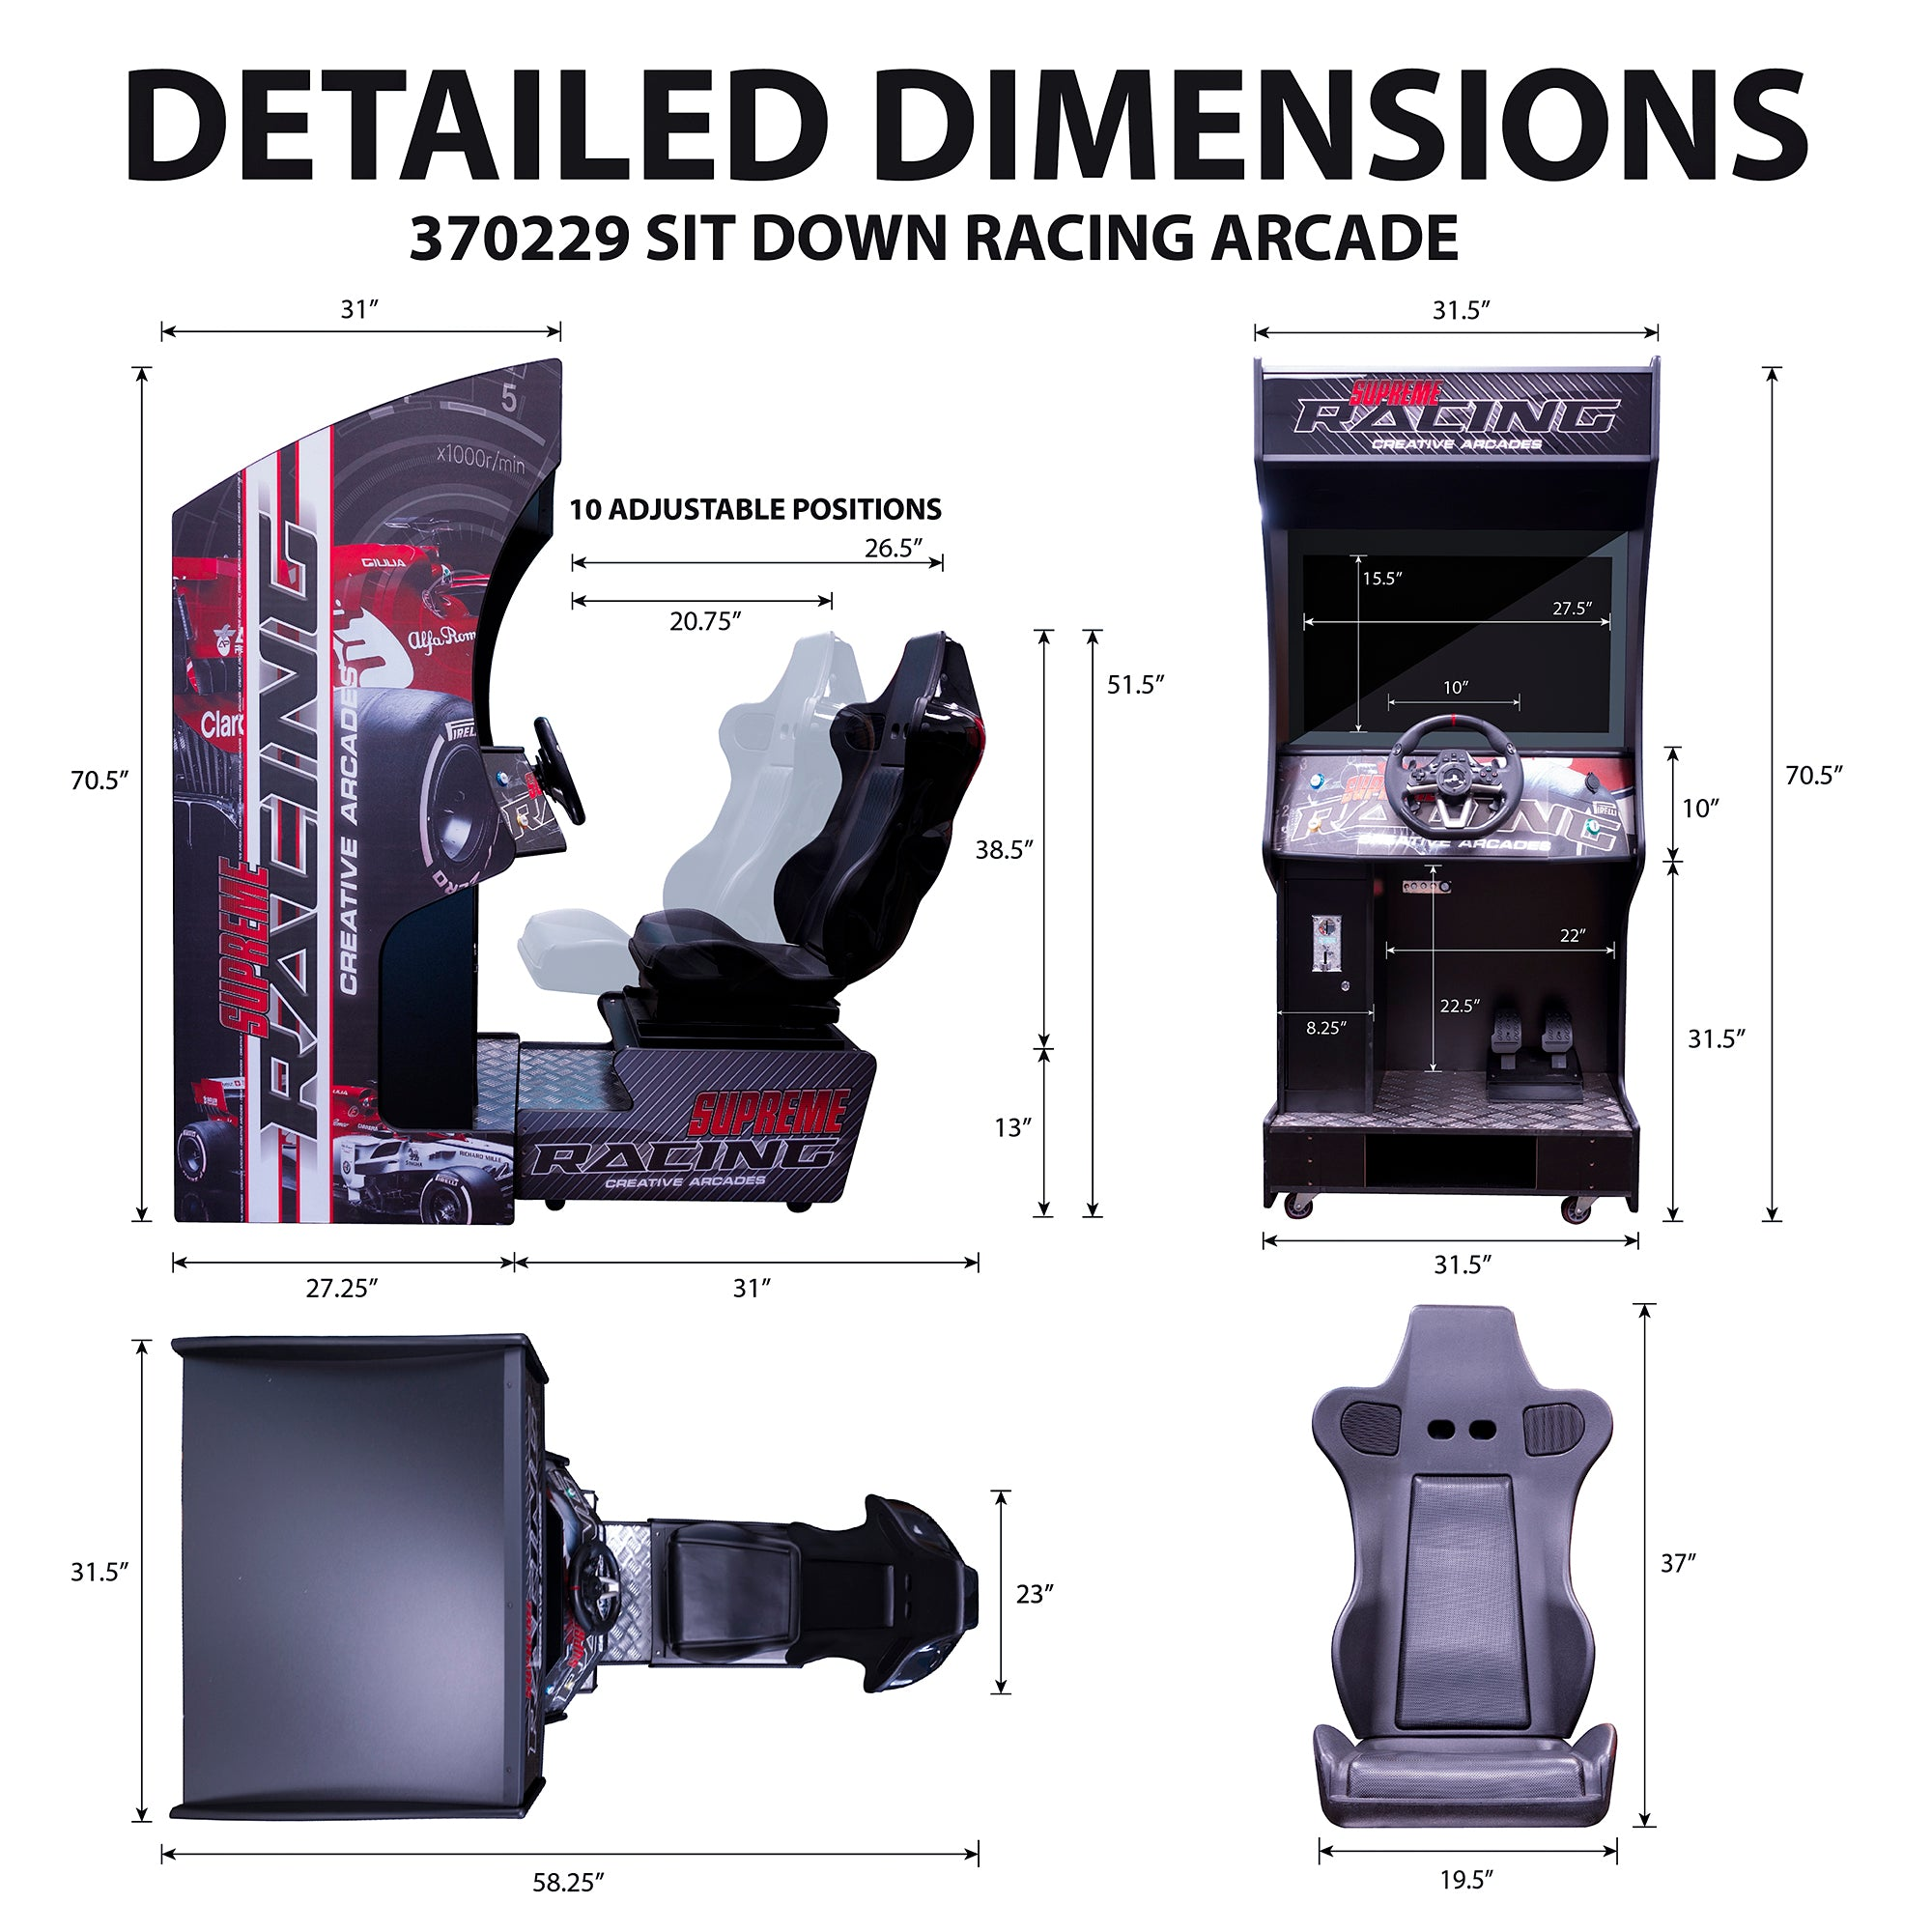 370229 Racing Arcade Machine Dimensions